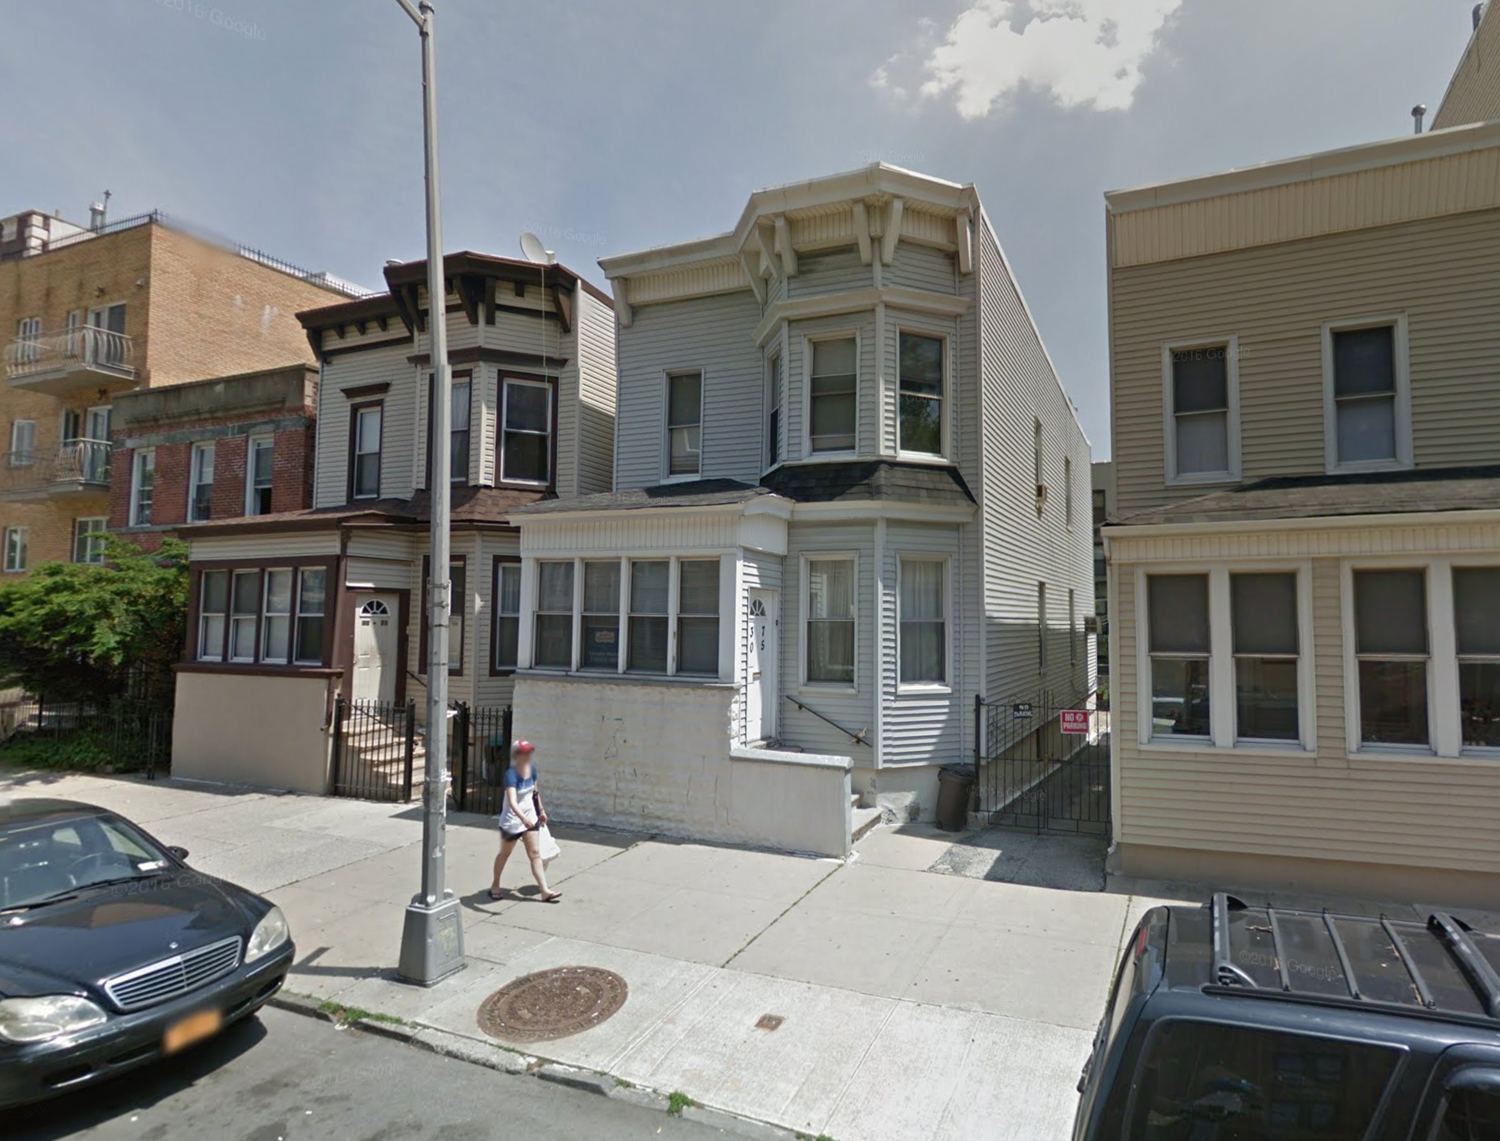 30-75 32nd Street, via Google Maps